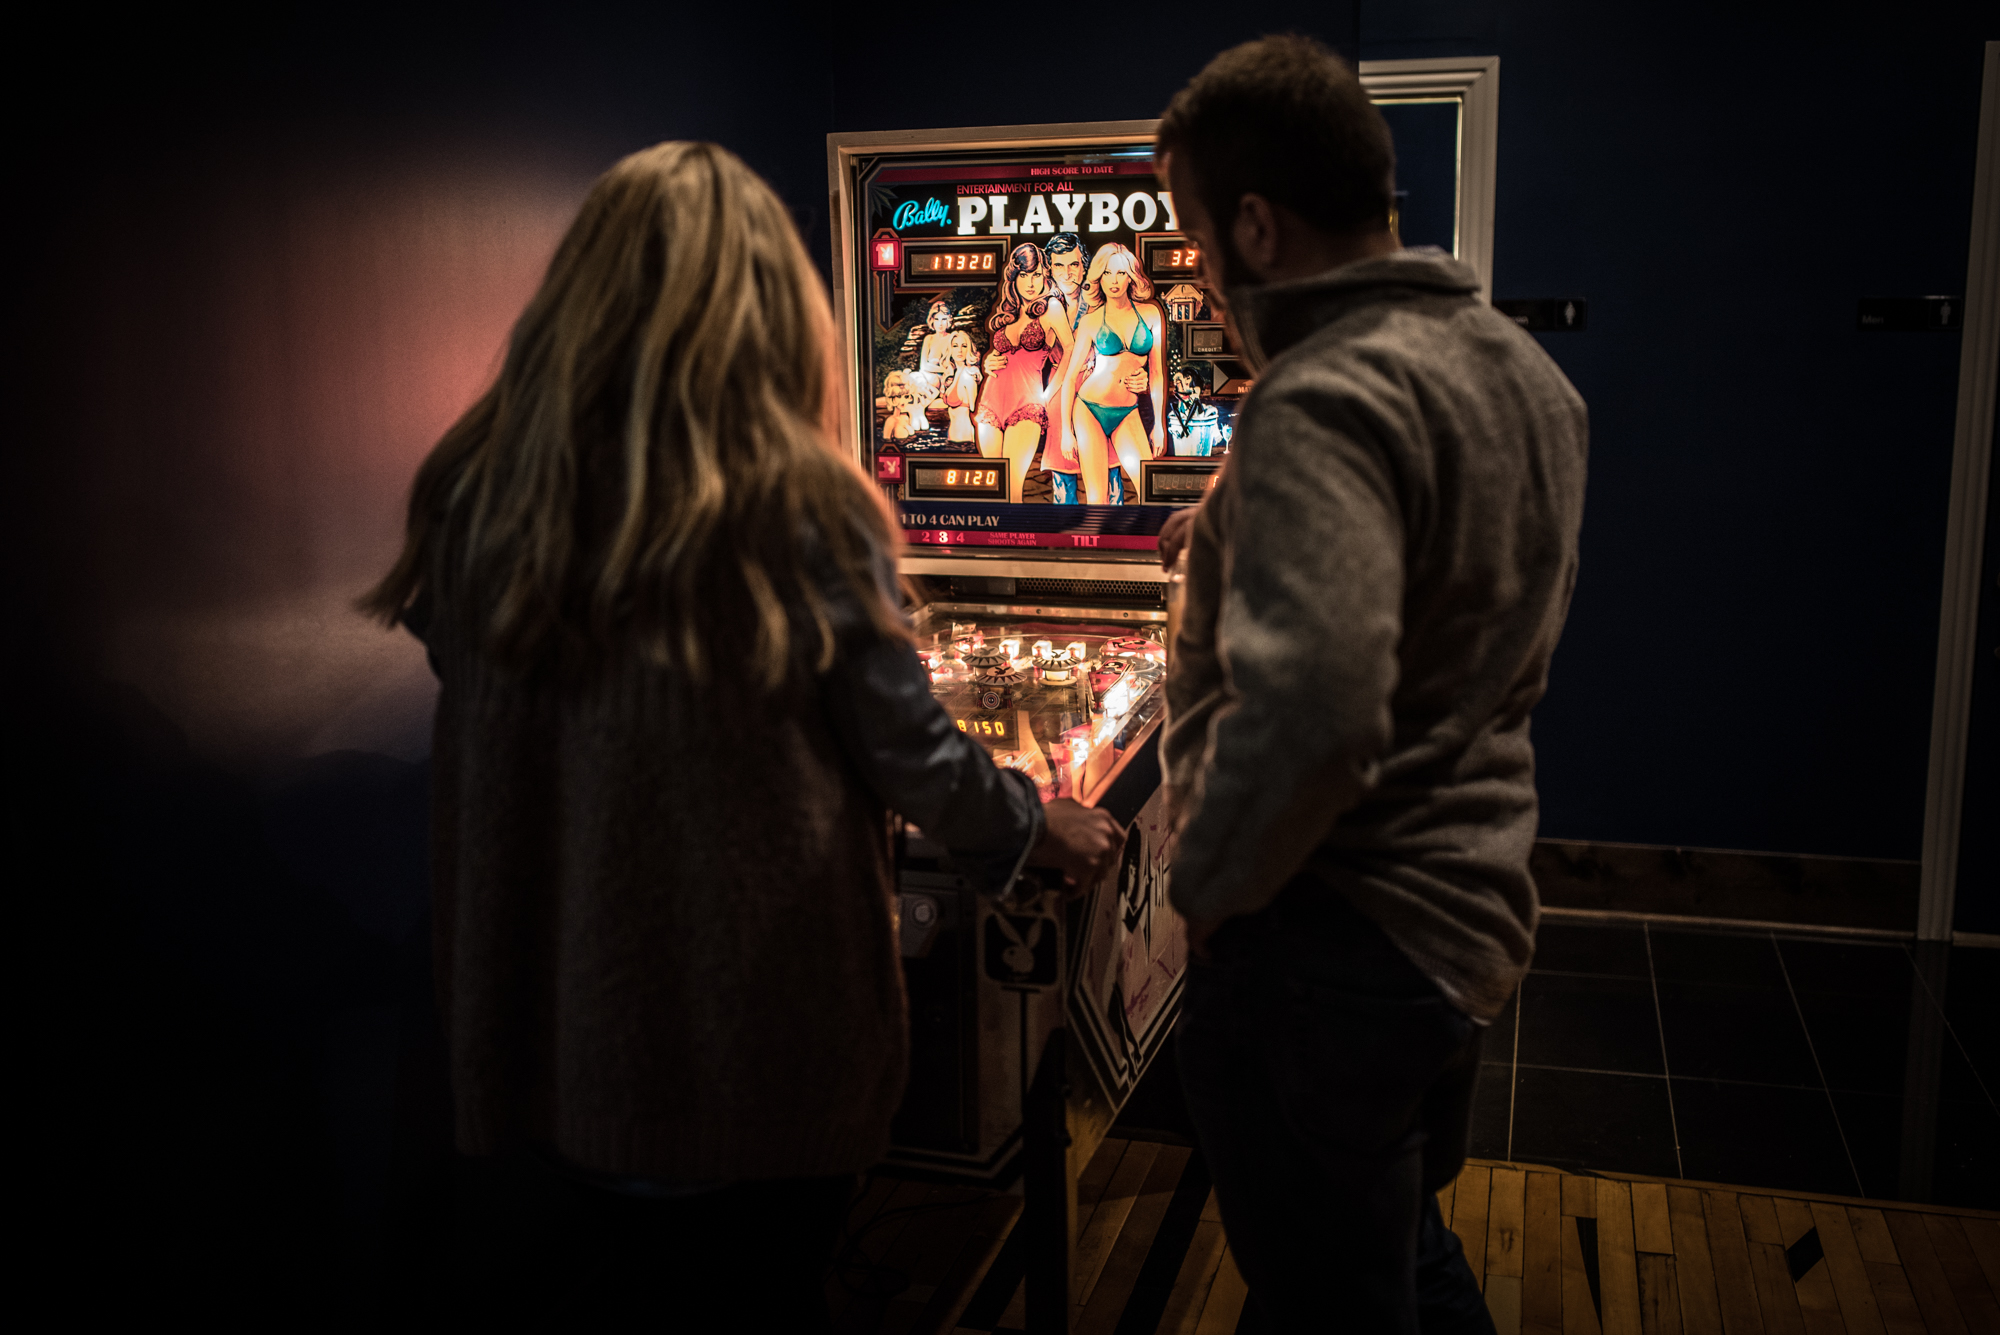 You'll find a Playboy pinball machine toward the back of the long, narrow bar.